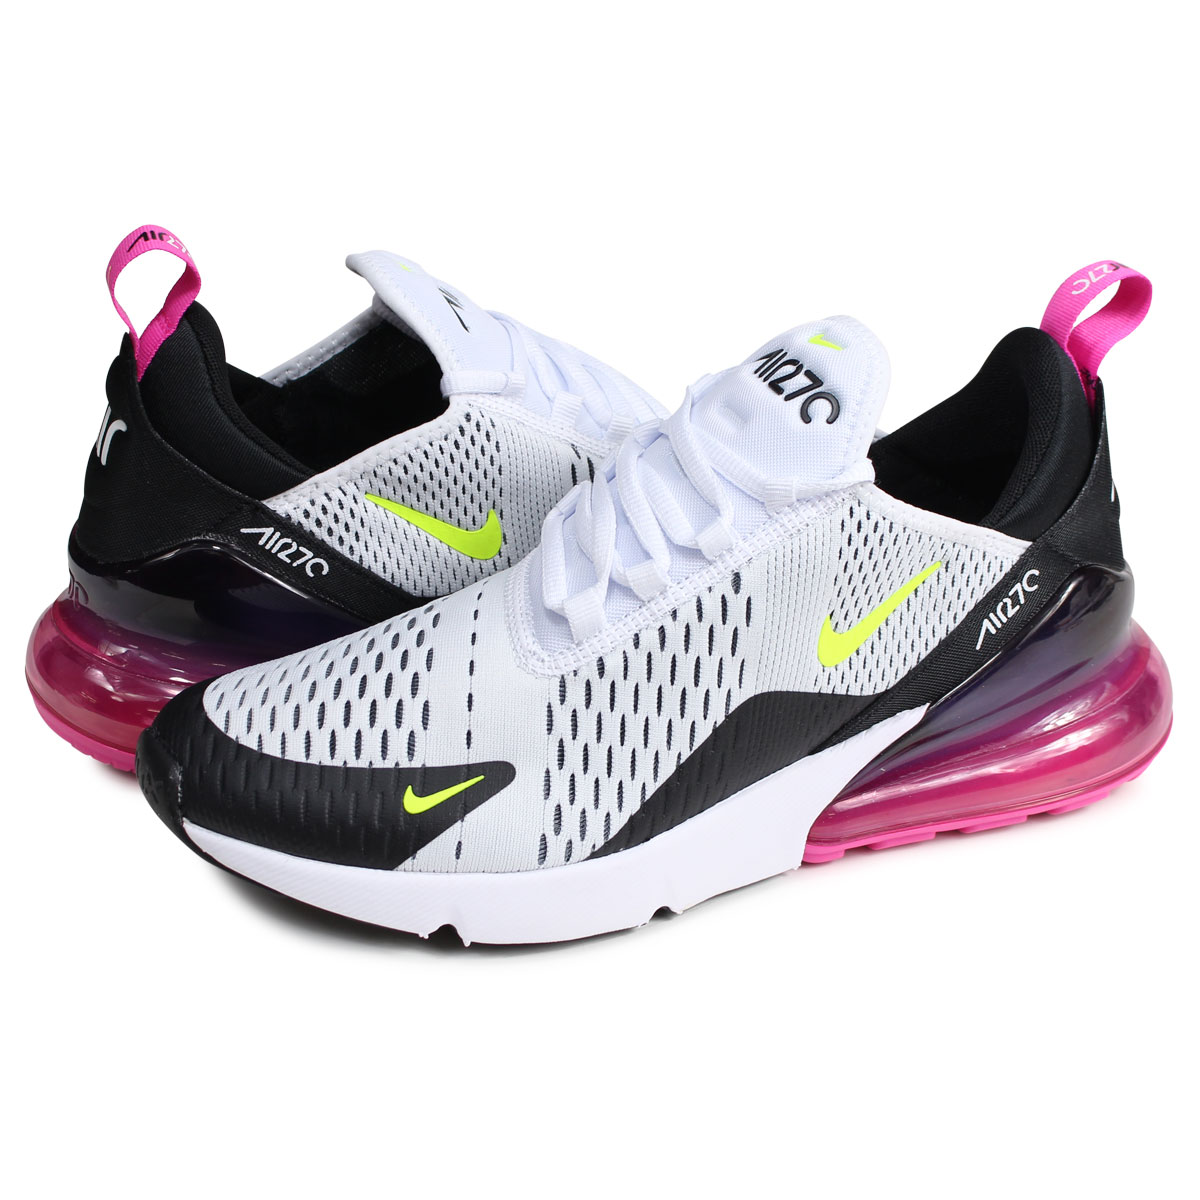 Nike NIKE Air Max 270 sneakers men AIR MAX 270 white white AH8050 109